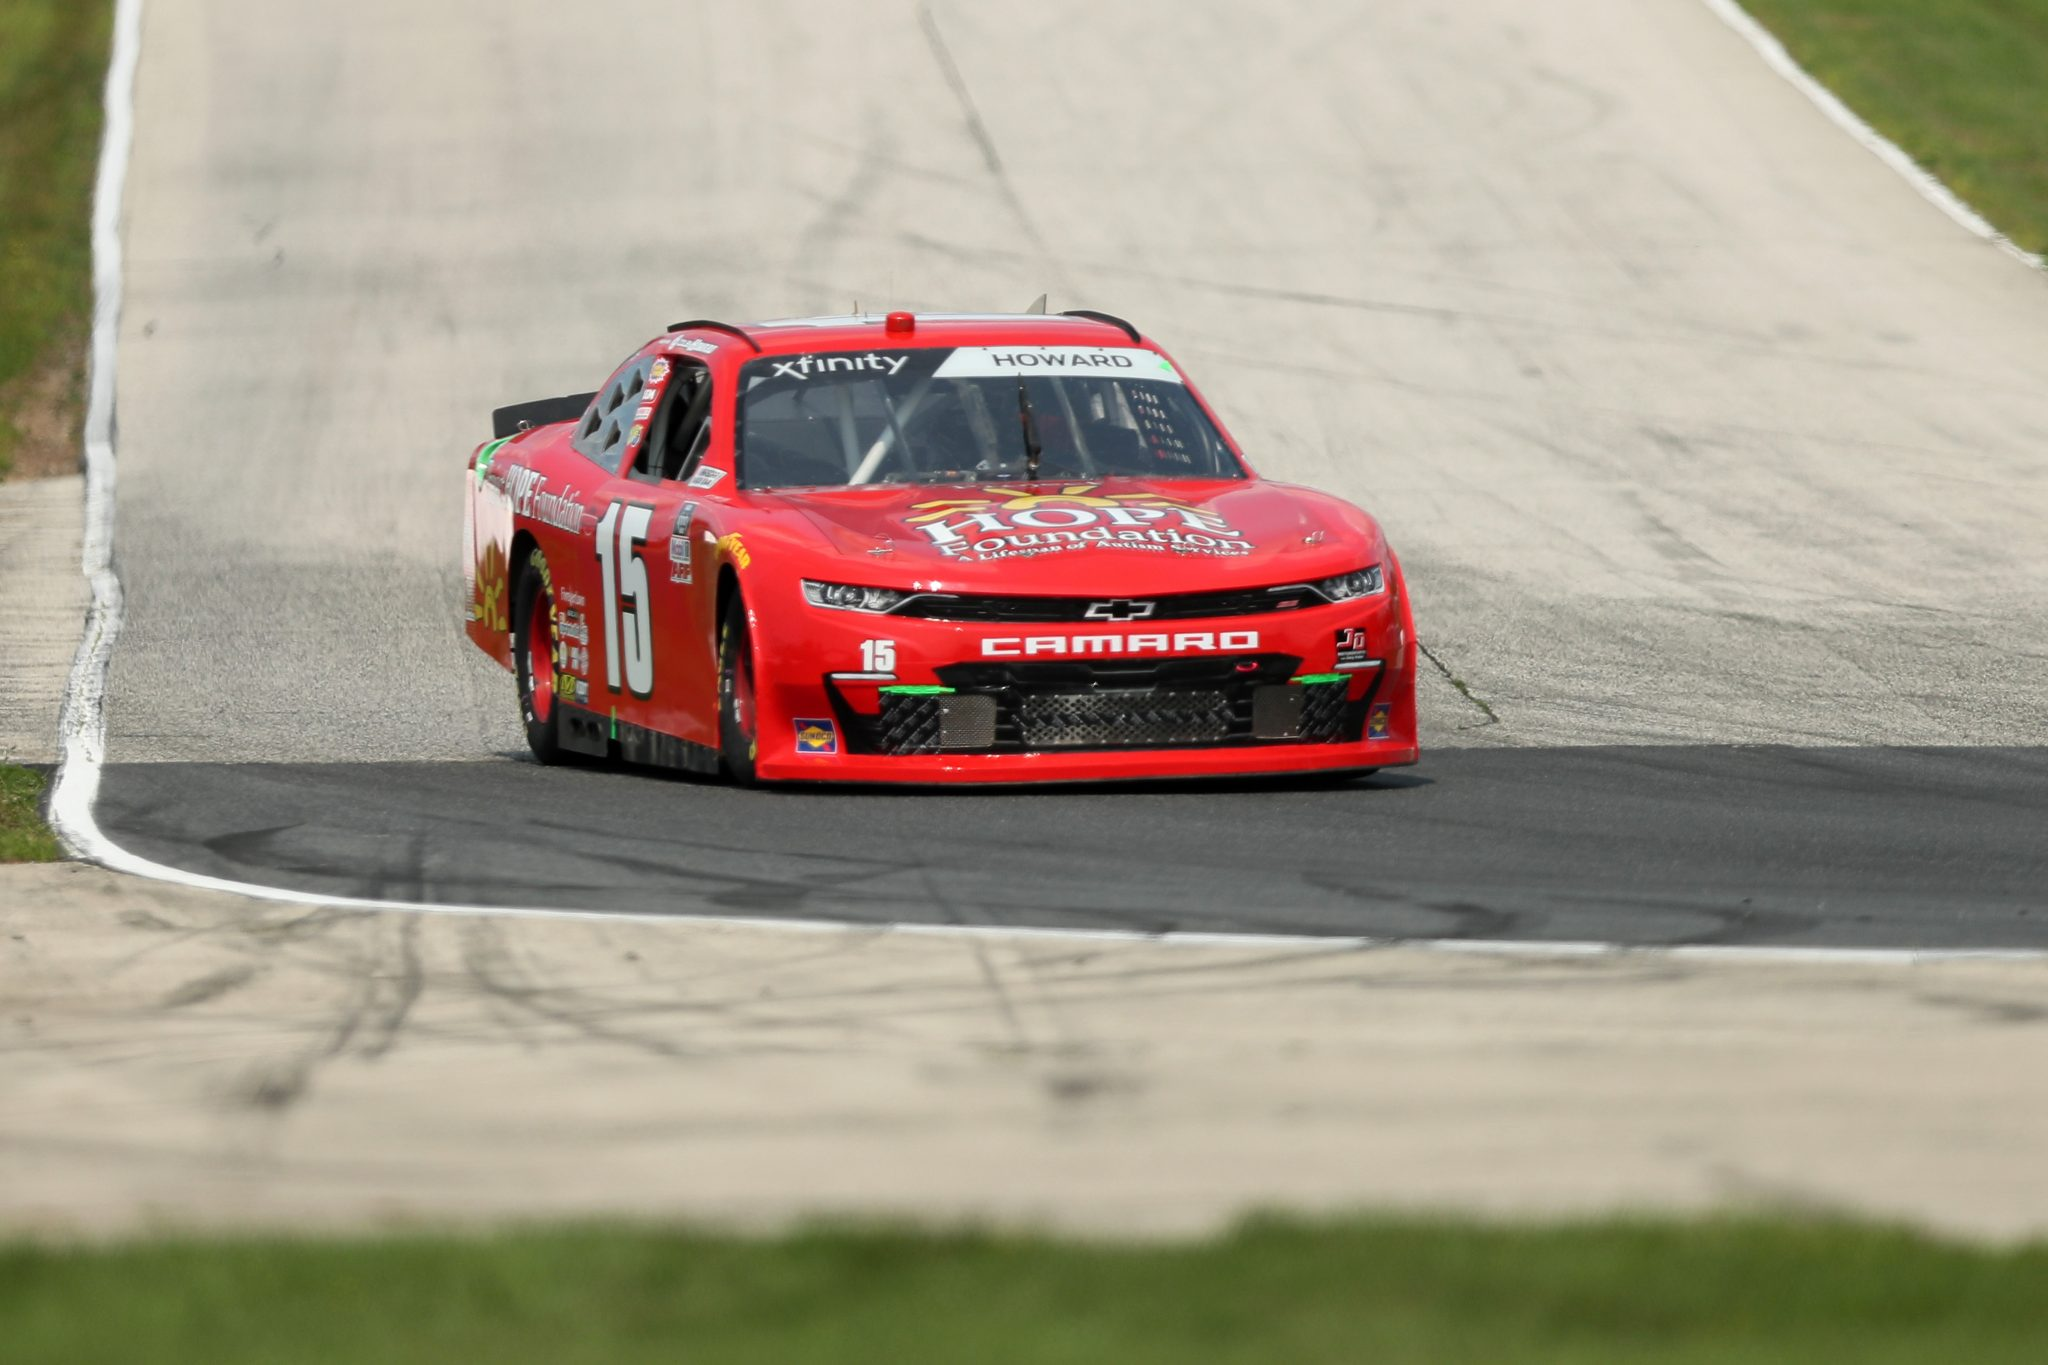 ELKHART LAKE, WISCONSIN - JULY 02: Colby Howard, driver of the #15 Project Hope Foundation Chevrolet, drives during practice for the NASCAR Xfinity Series Henry 180 at Road America on July 02, 2021 in Elkhart Lake, Wisconsin. (Photo by James Gilbert/Getty Images)   Getty Images